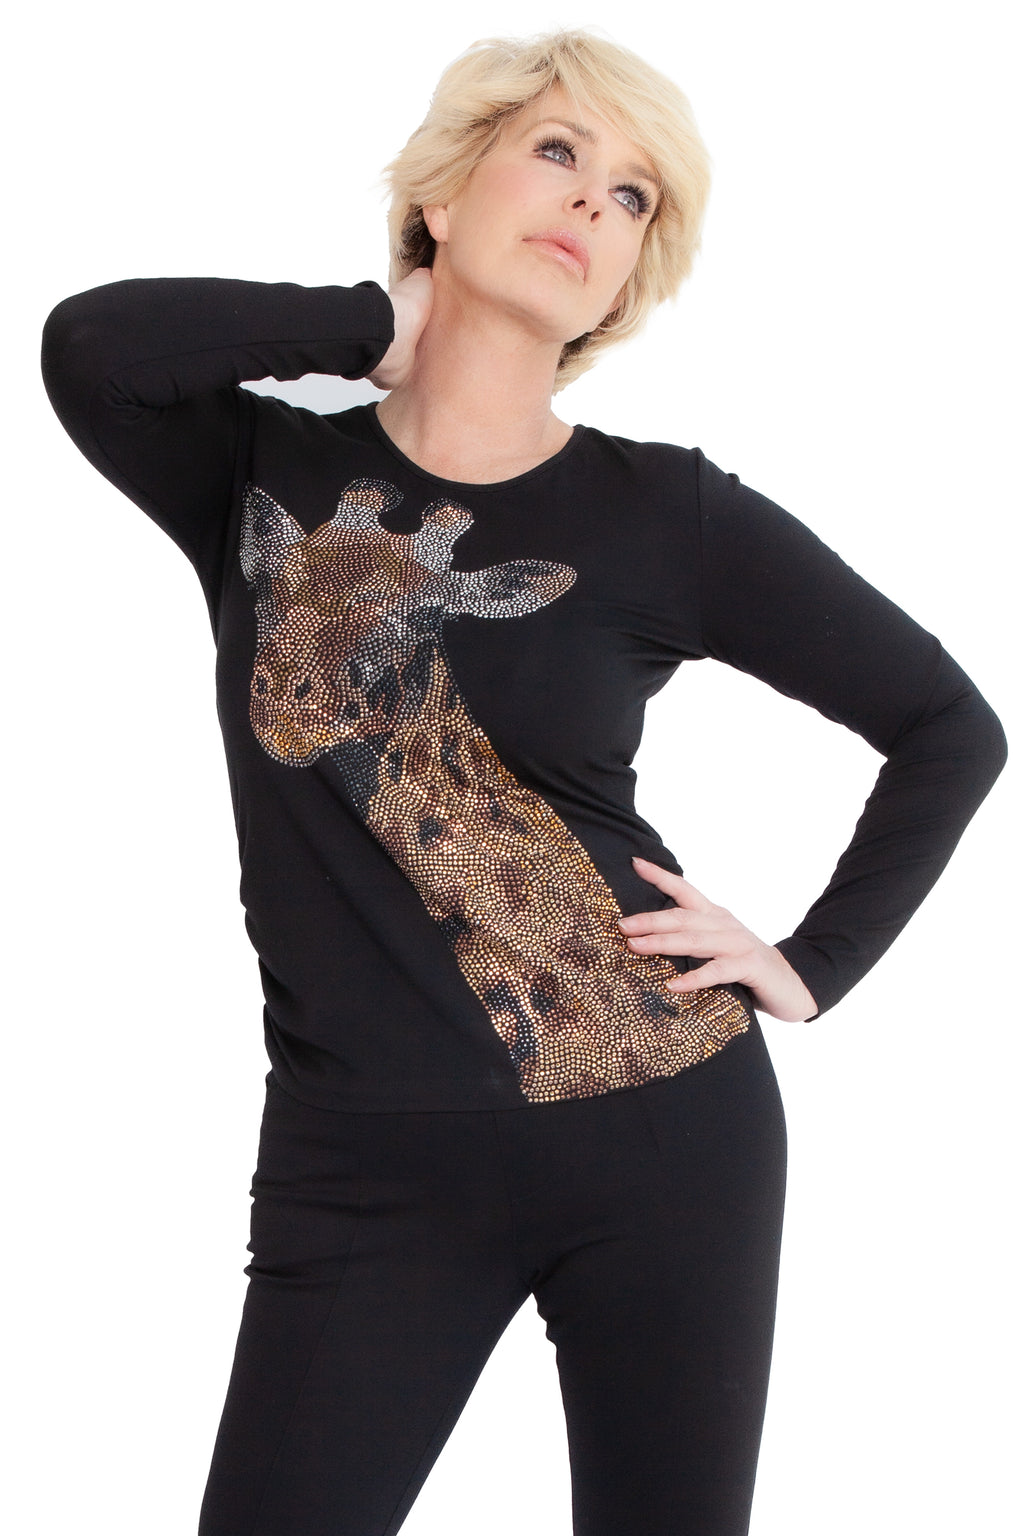 Giraffe Easy Wear Top - W5500112